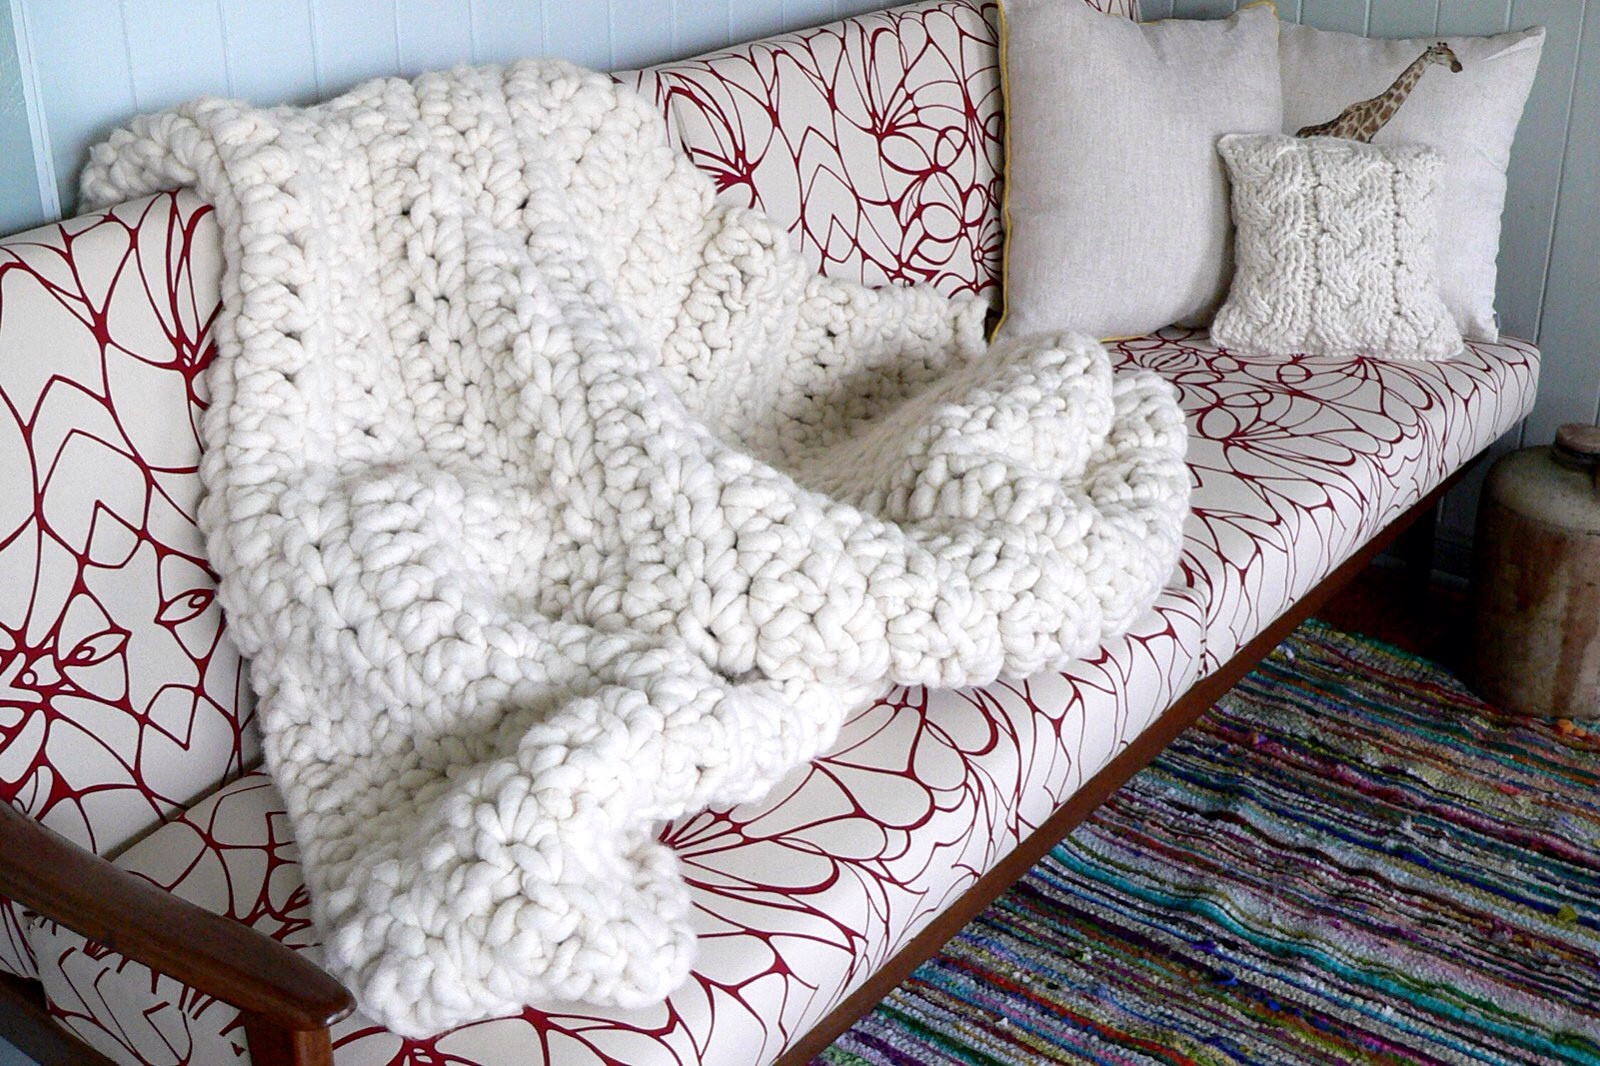 Baby Afghan Patterns Awesome Free Crochet Afghan Patterns for Bulky Yarn Dancox for Of Amazing 46 Ideas Baby Afghan Patterns